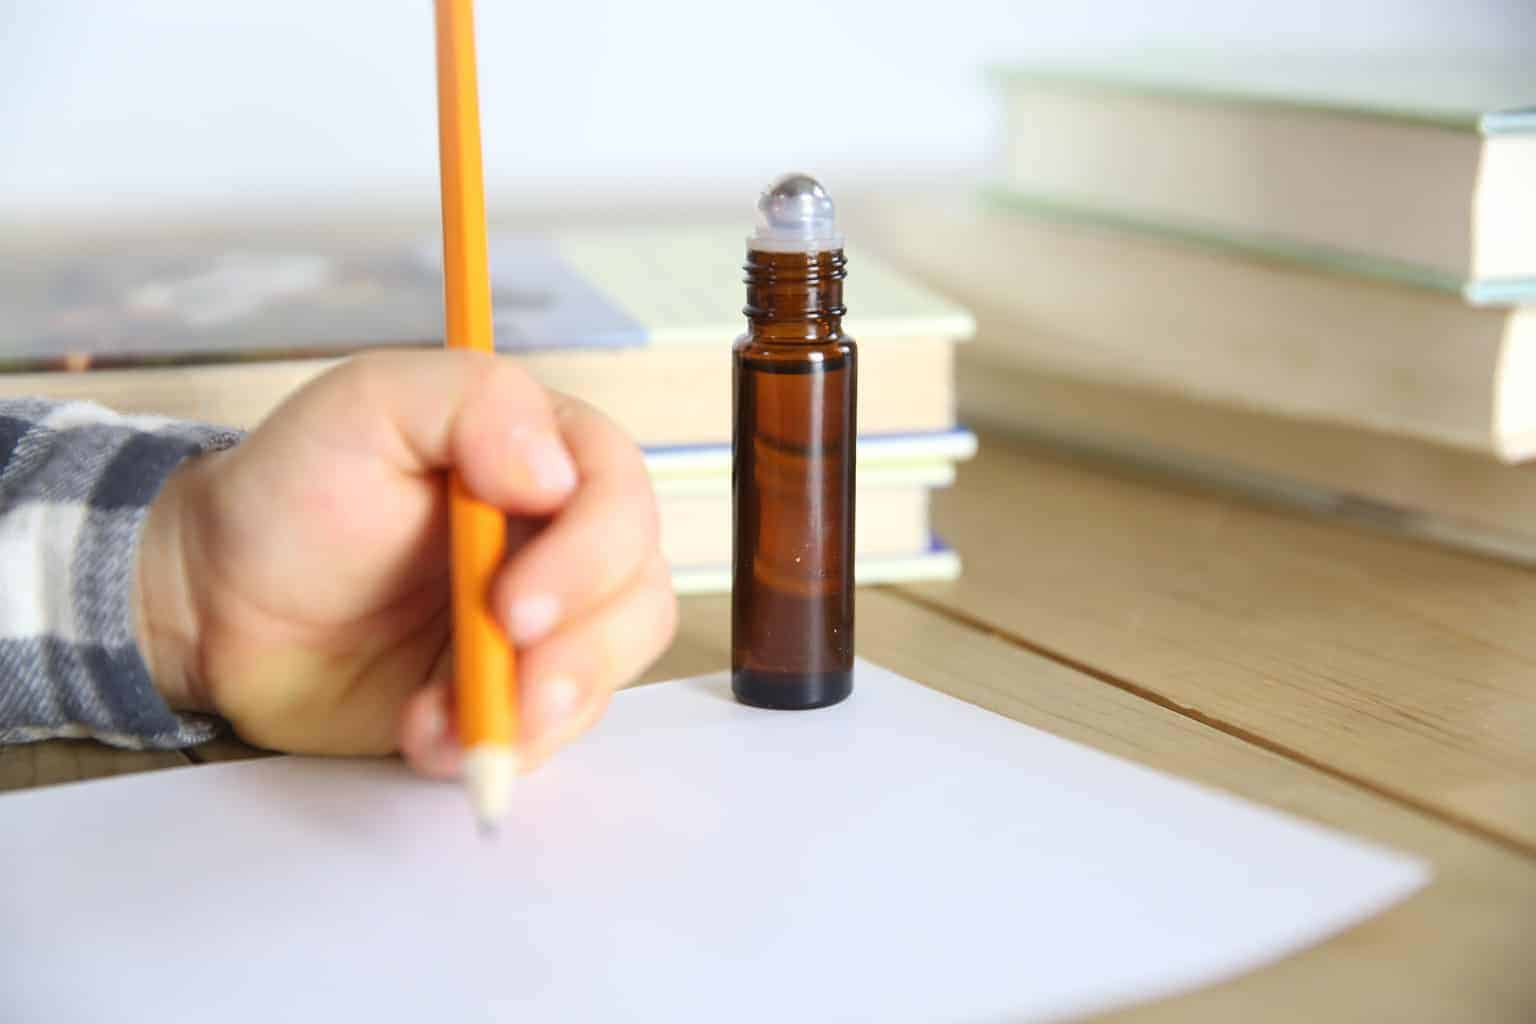 little kid studying with essential oil roller bottle for focus and concentration on table